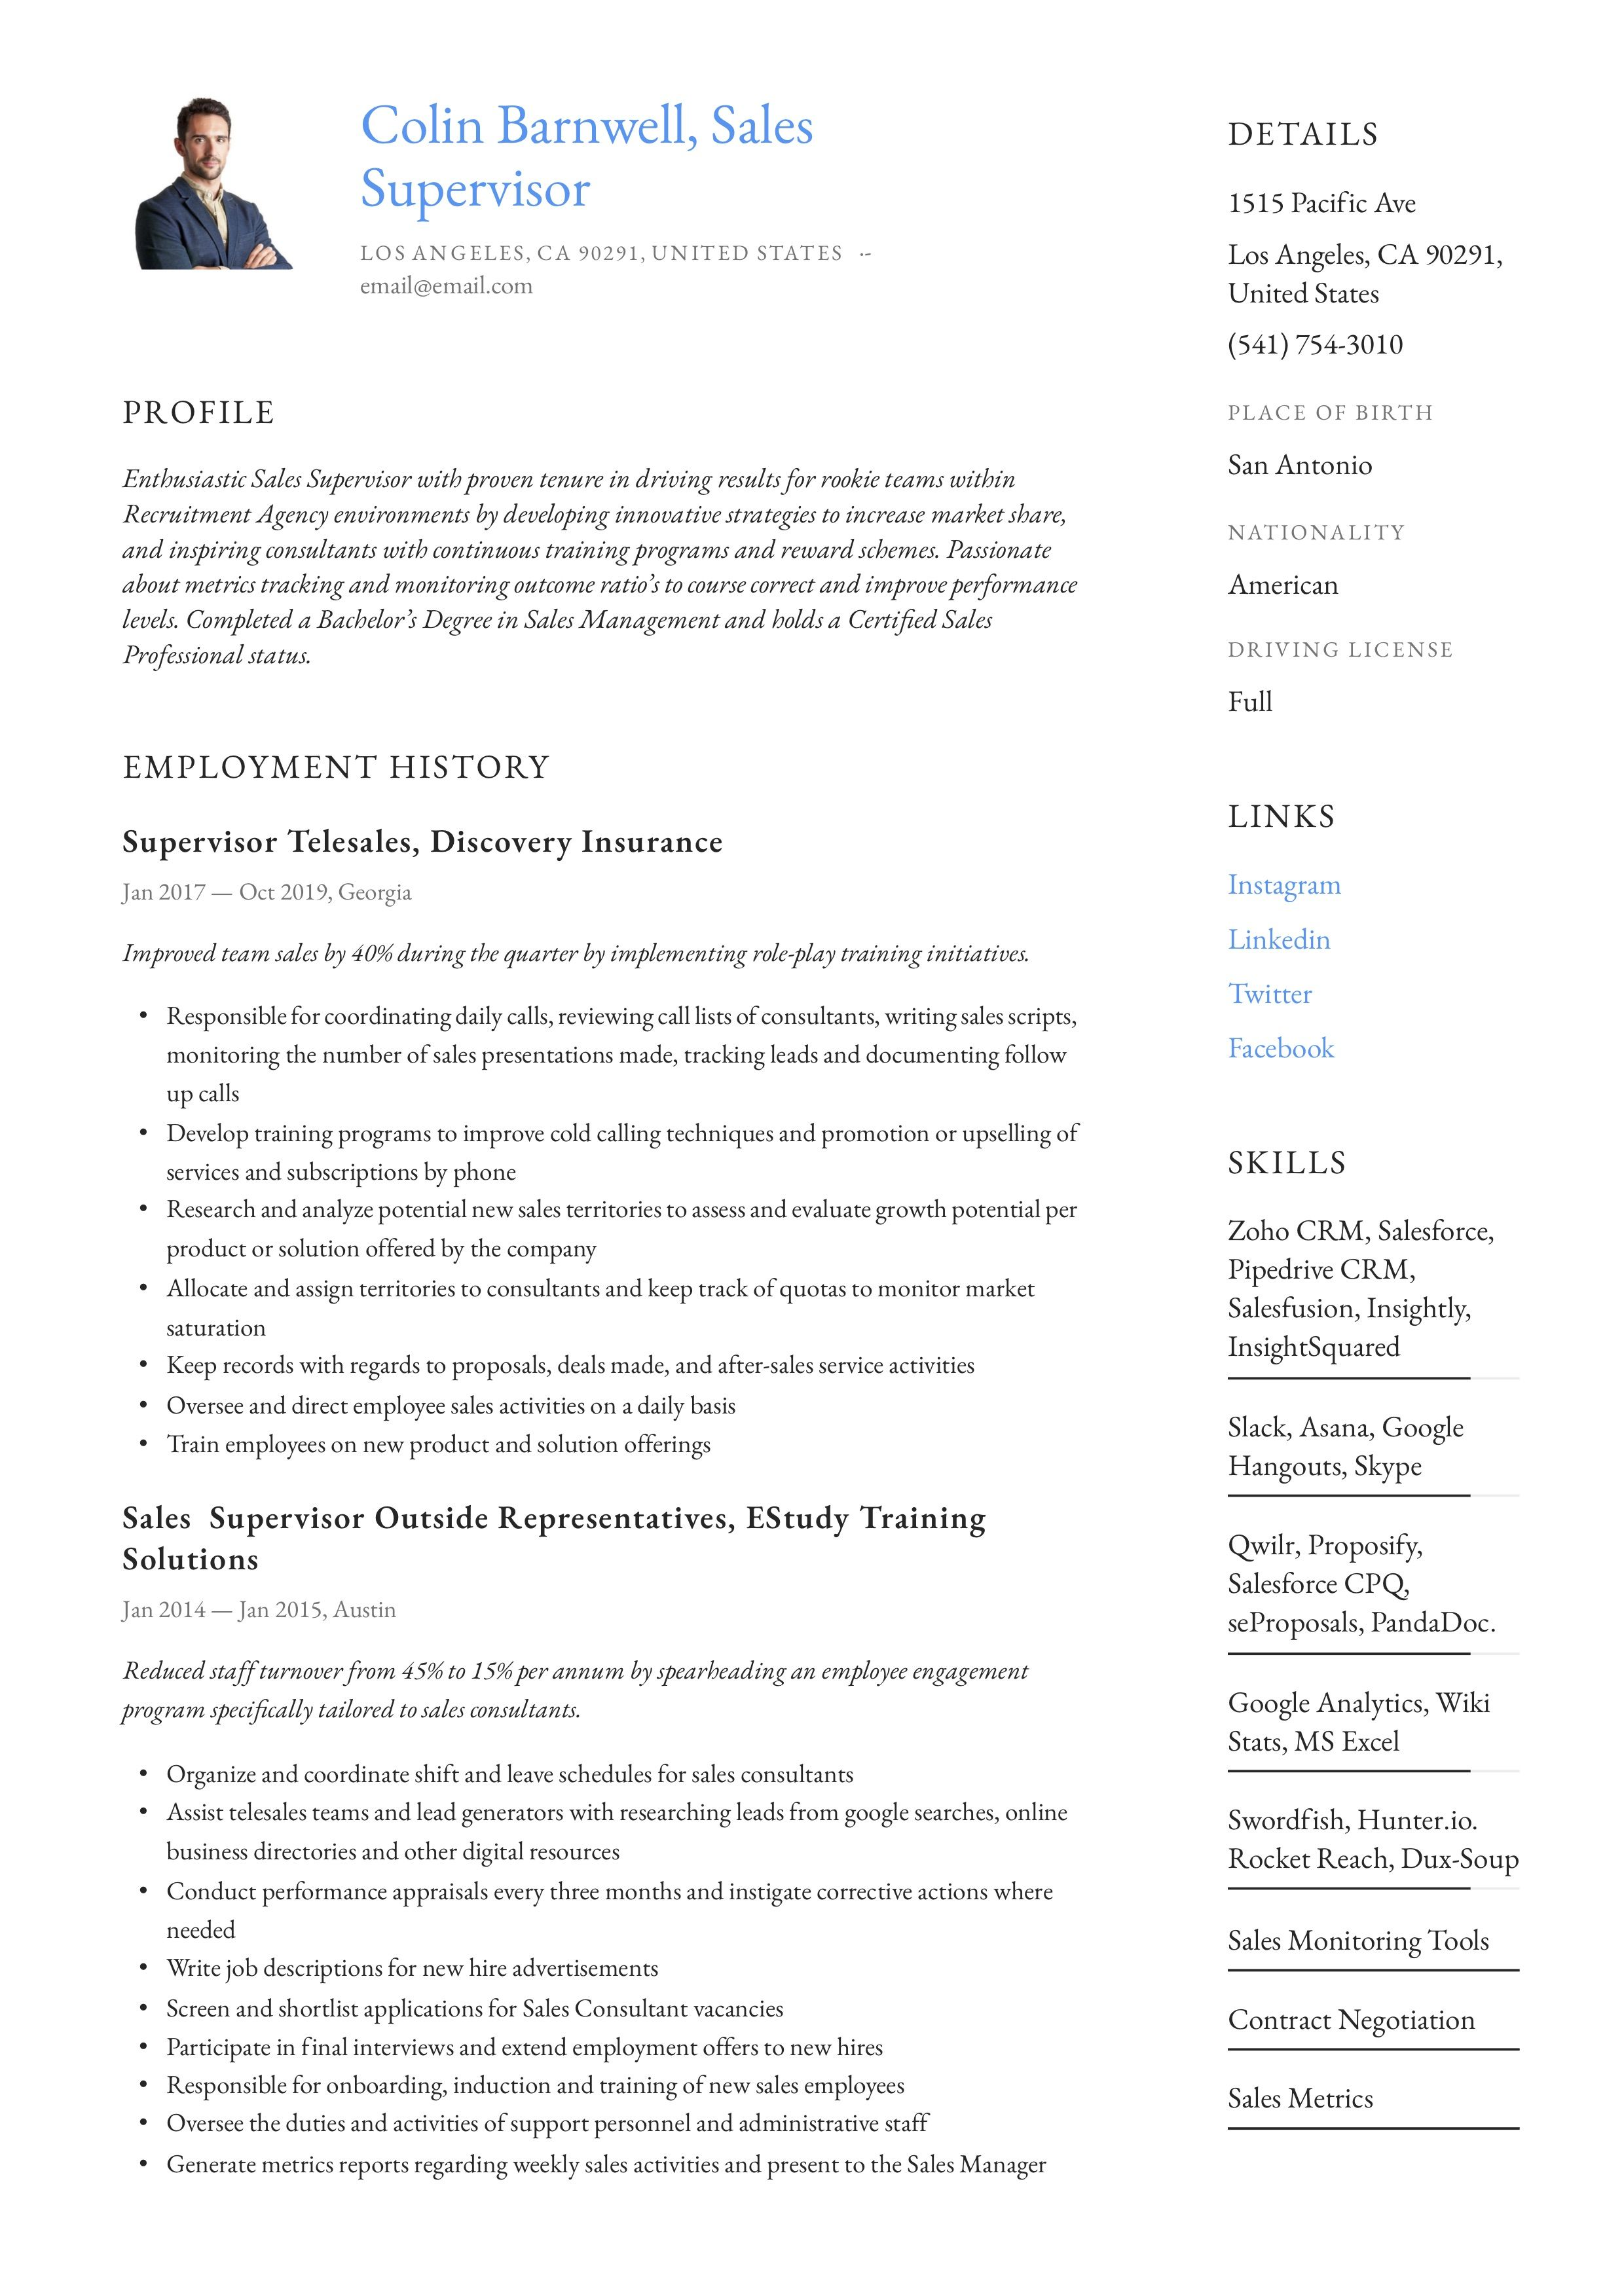 Sales Supervisor Resume Example Retail Resume Examples Retail Resume Guided Writing